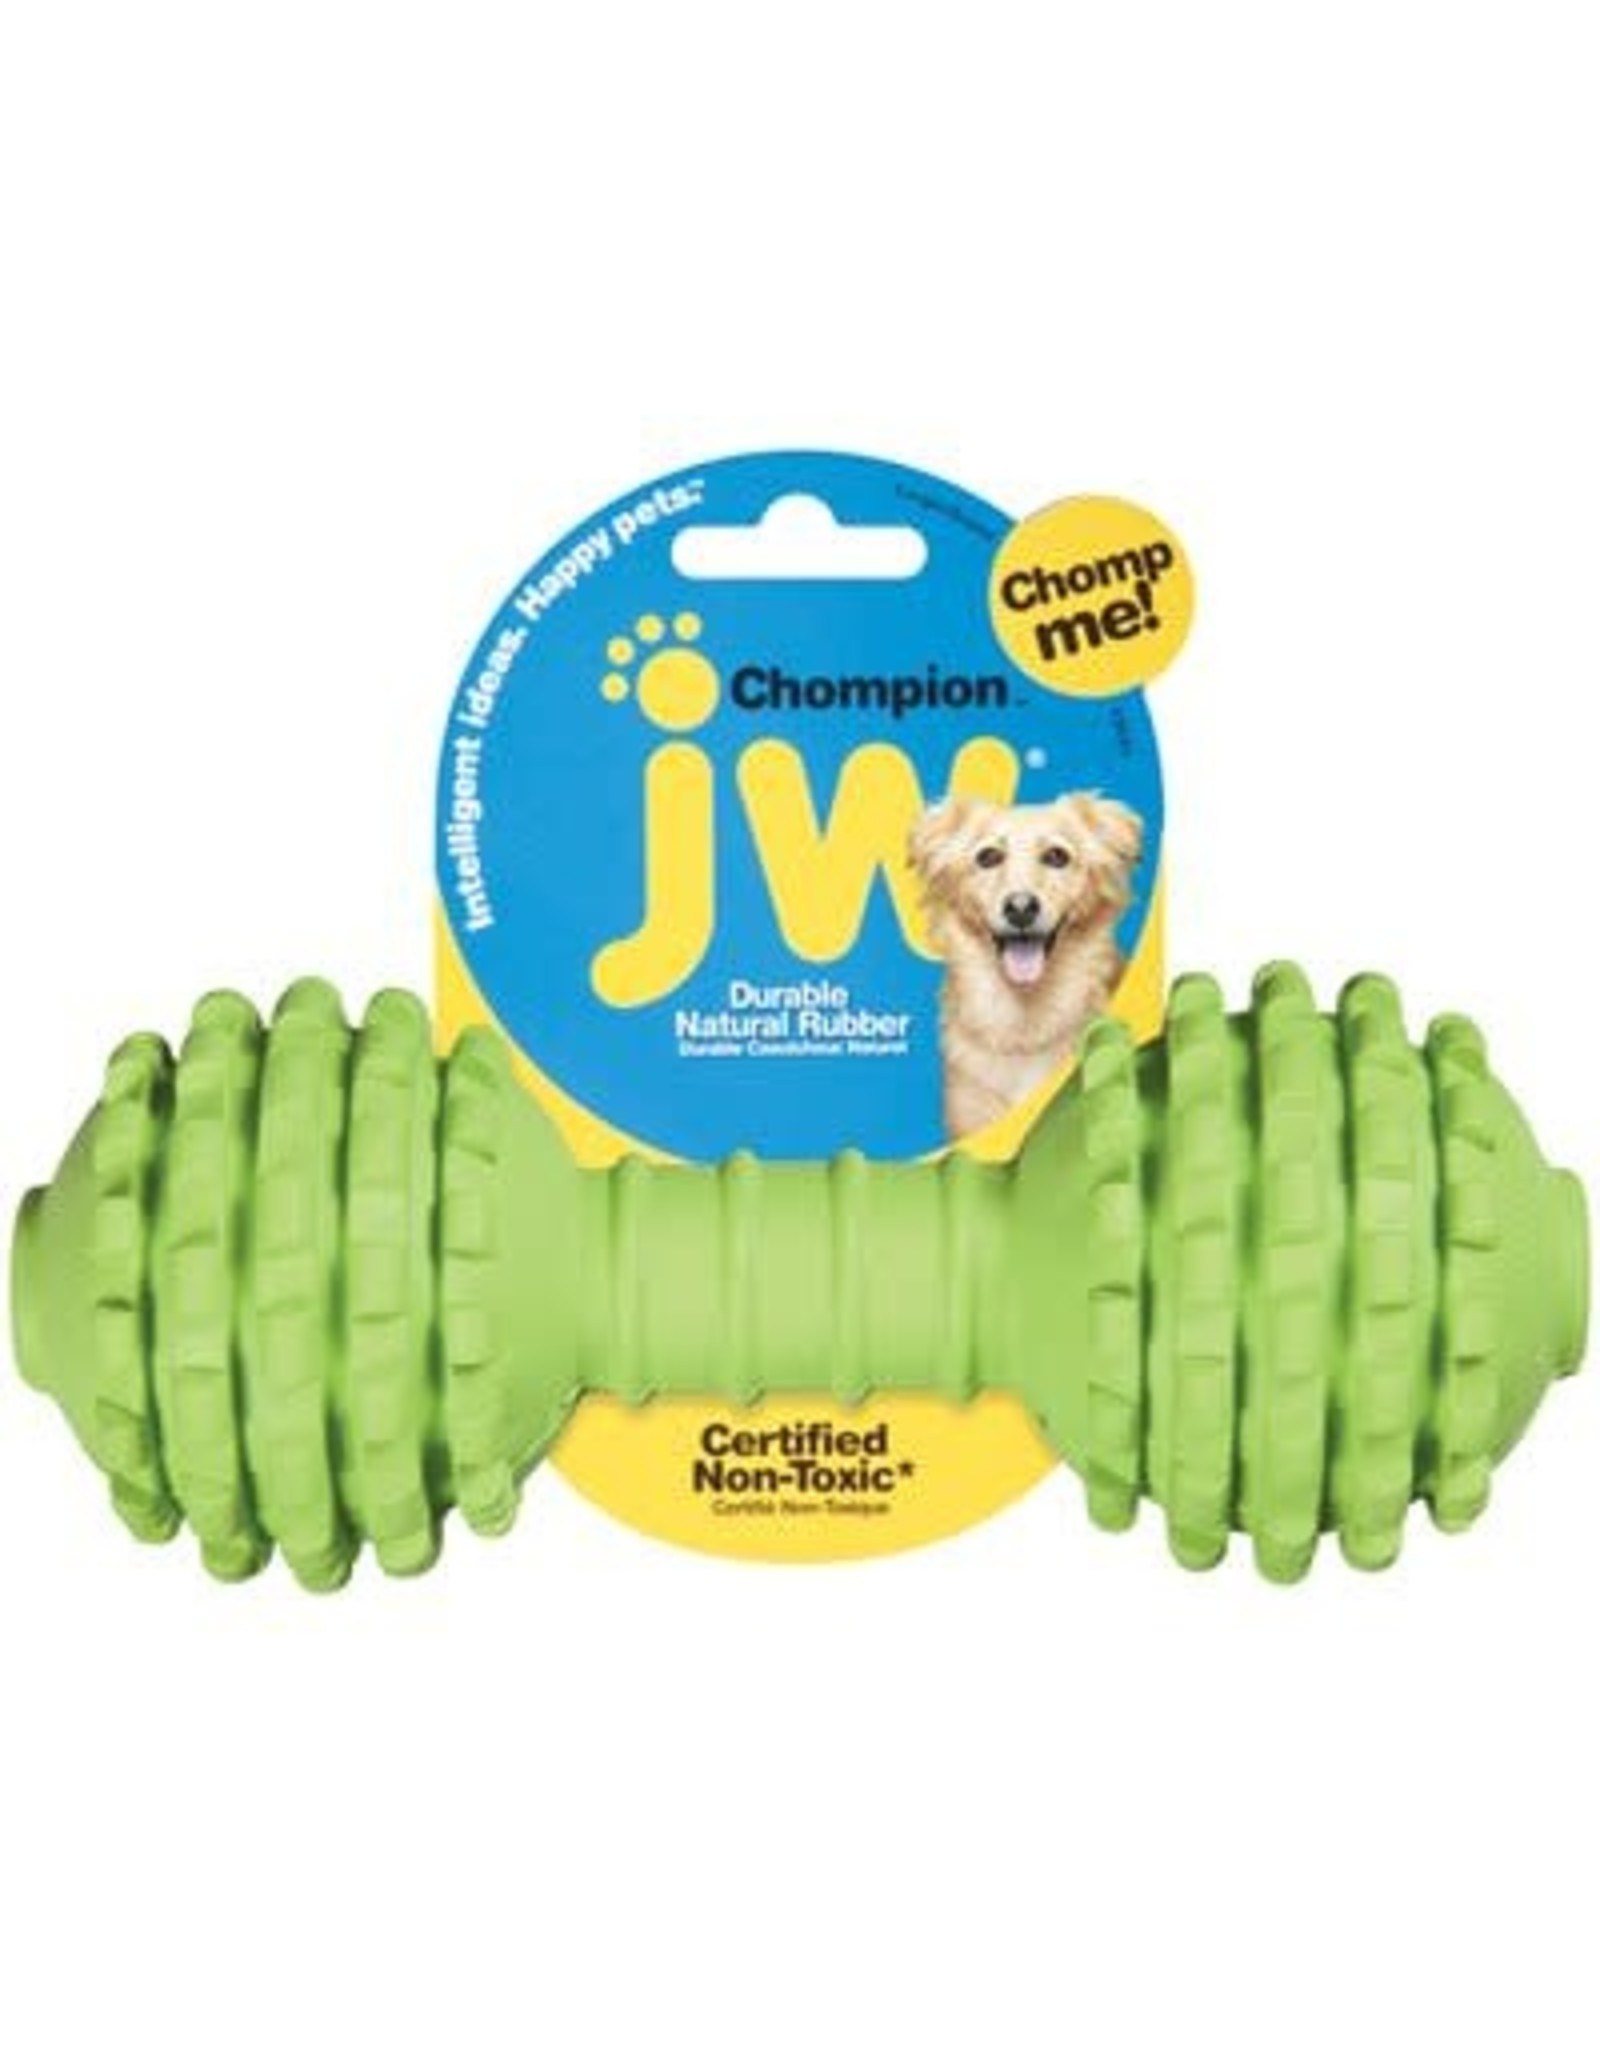 JWPET JWPET Chompion Heavyweight